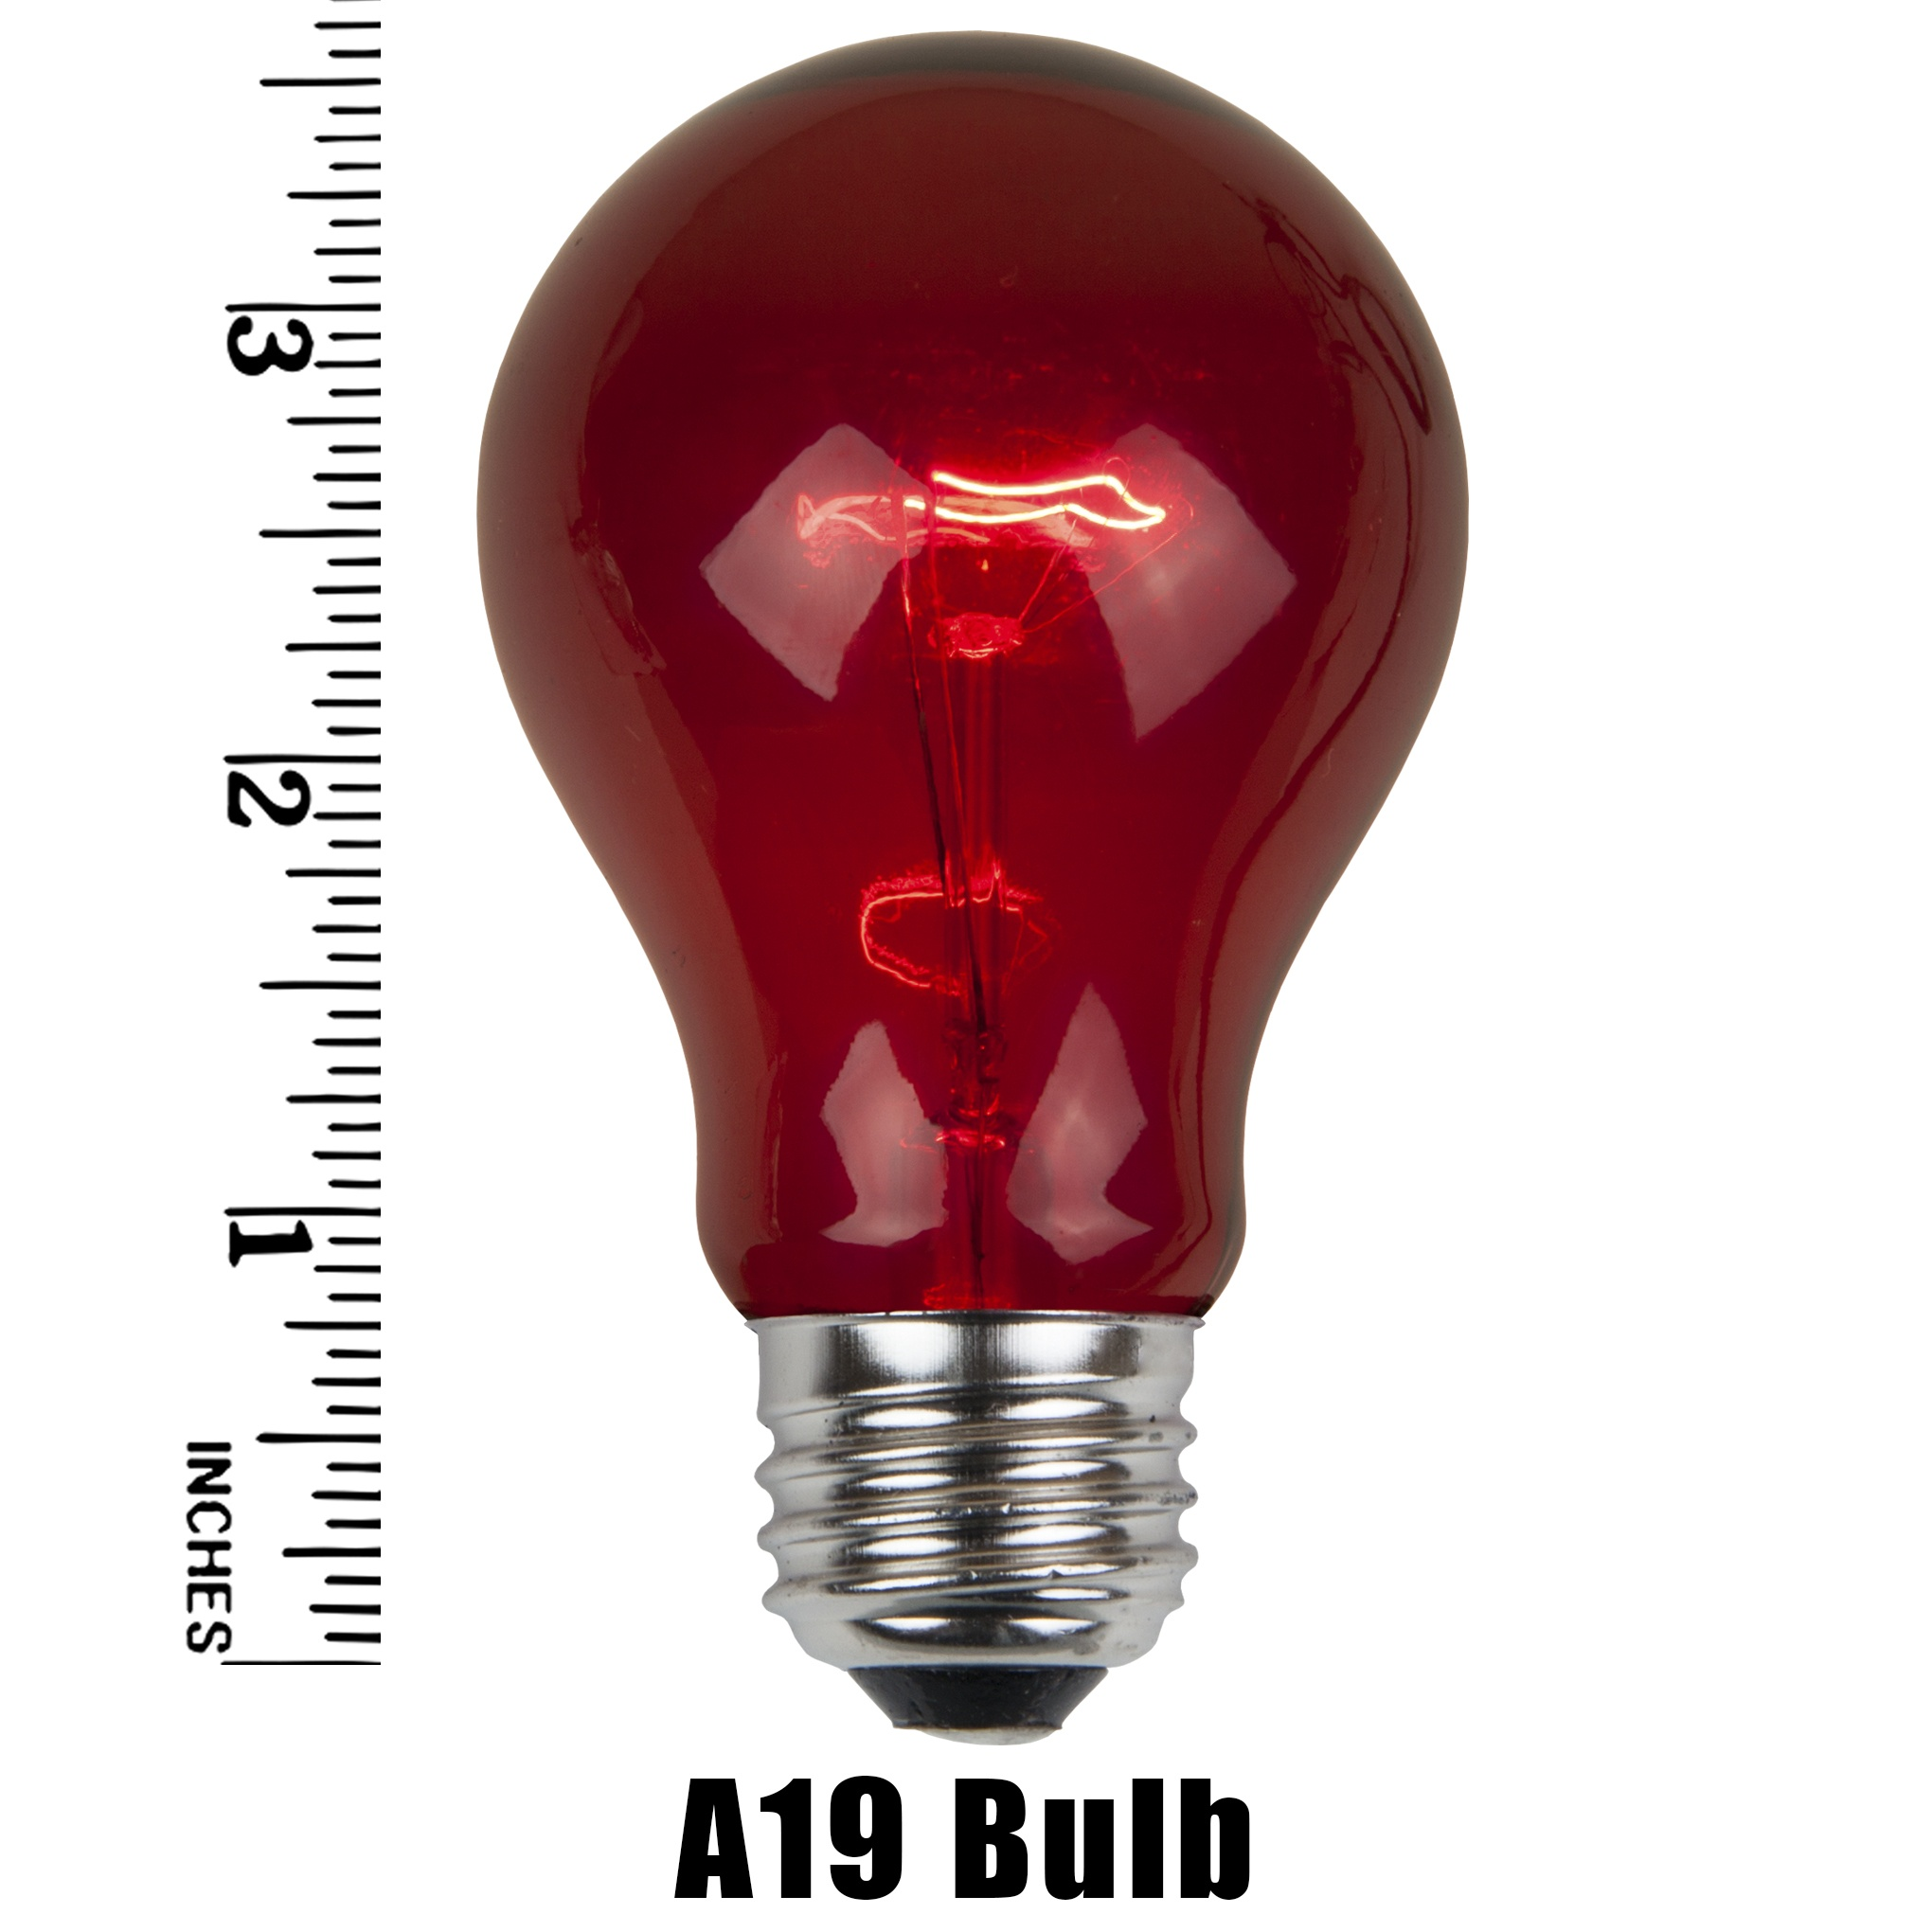 A19 Multicolored Transparent Incandescent Bulbs Measurement